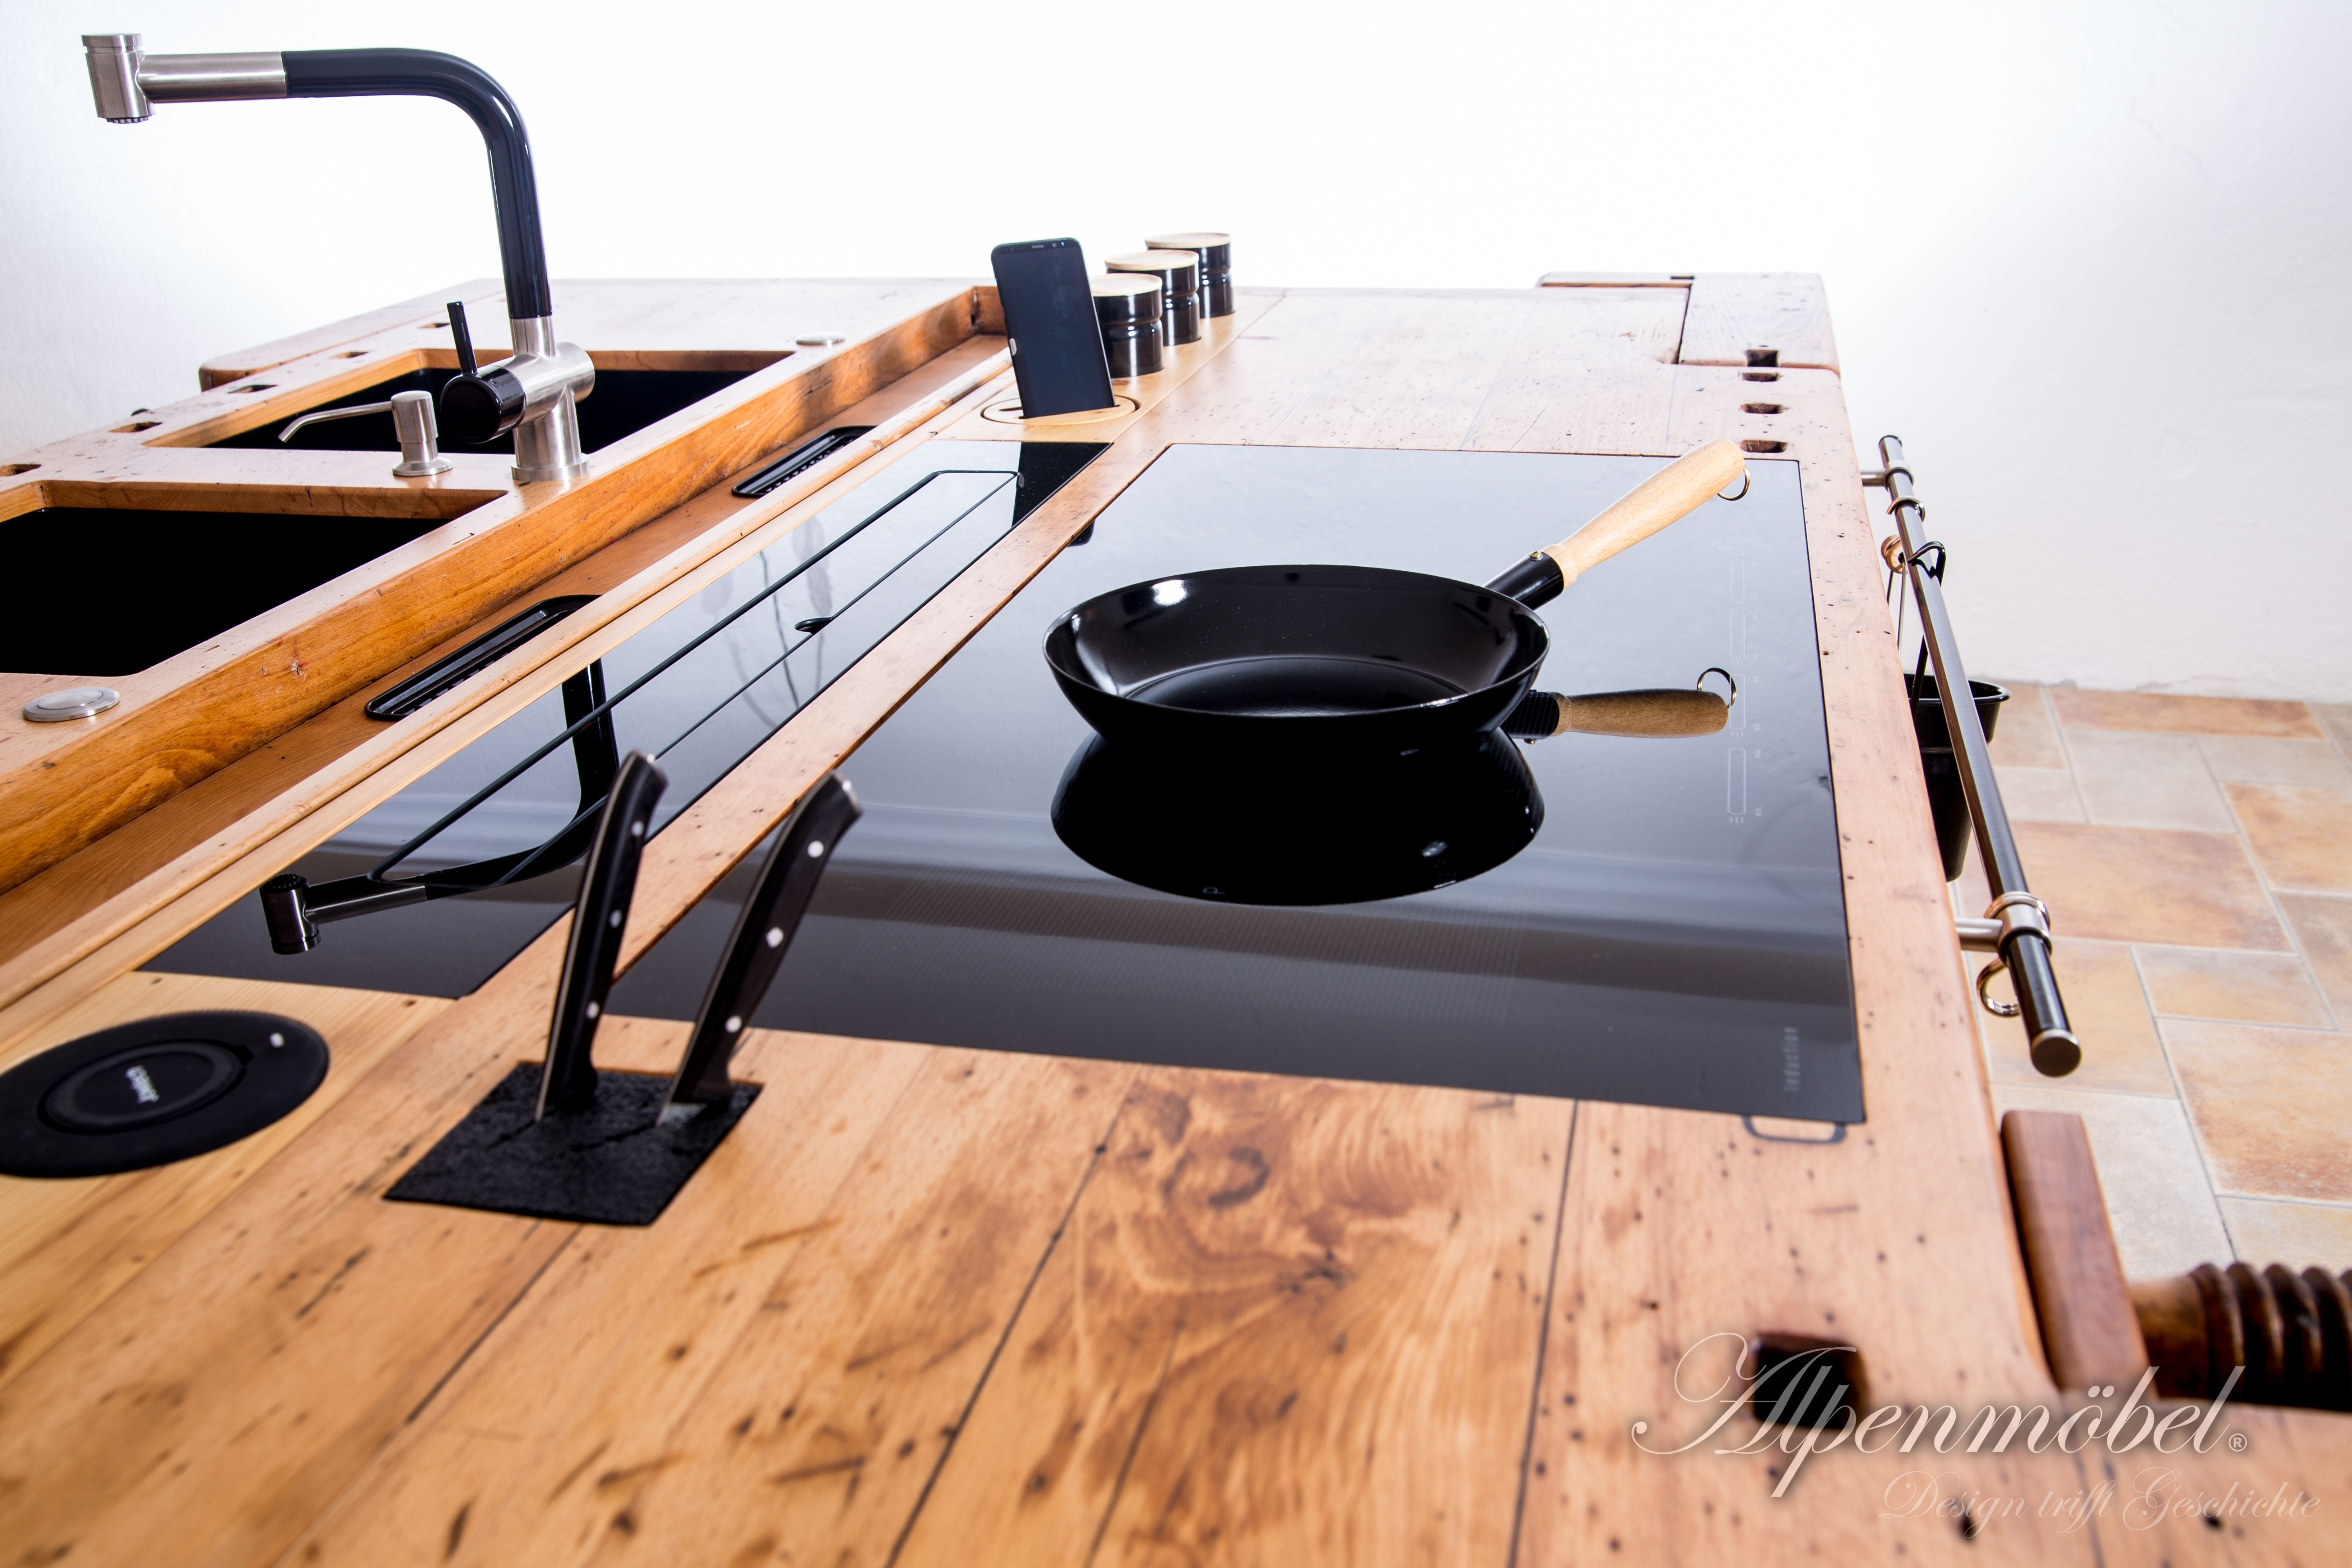 Induction Hob Combined With Old Wooden Worktop Induktions Kochfeld Kombiniert Mit Altholz Arbeitsplatte Altholz Arbeitsplatte Mobel Holz Design